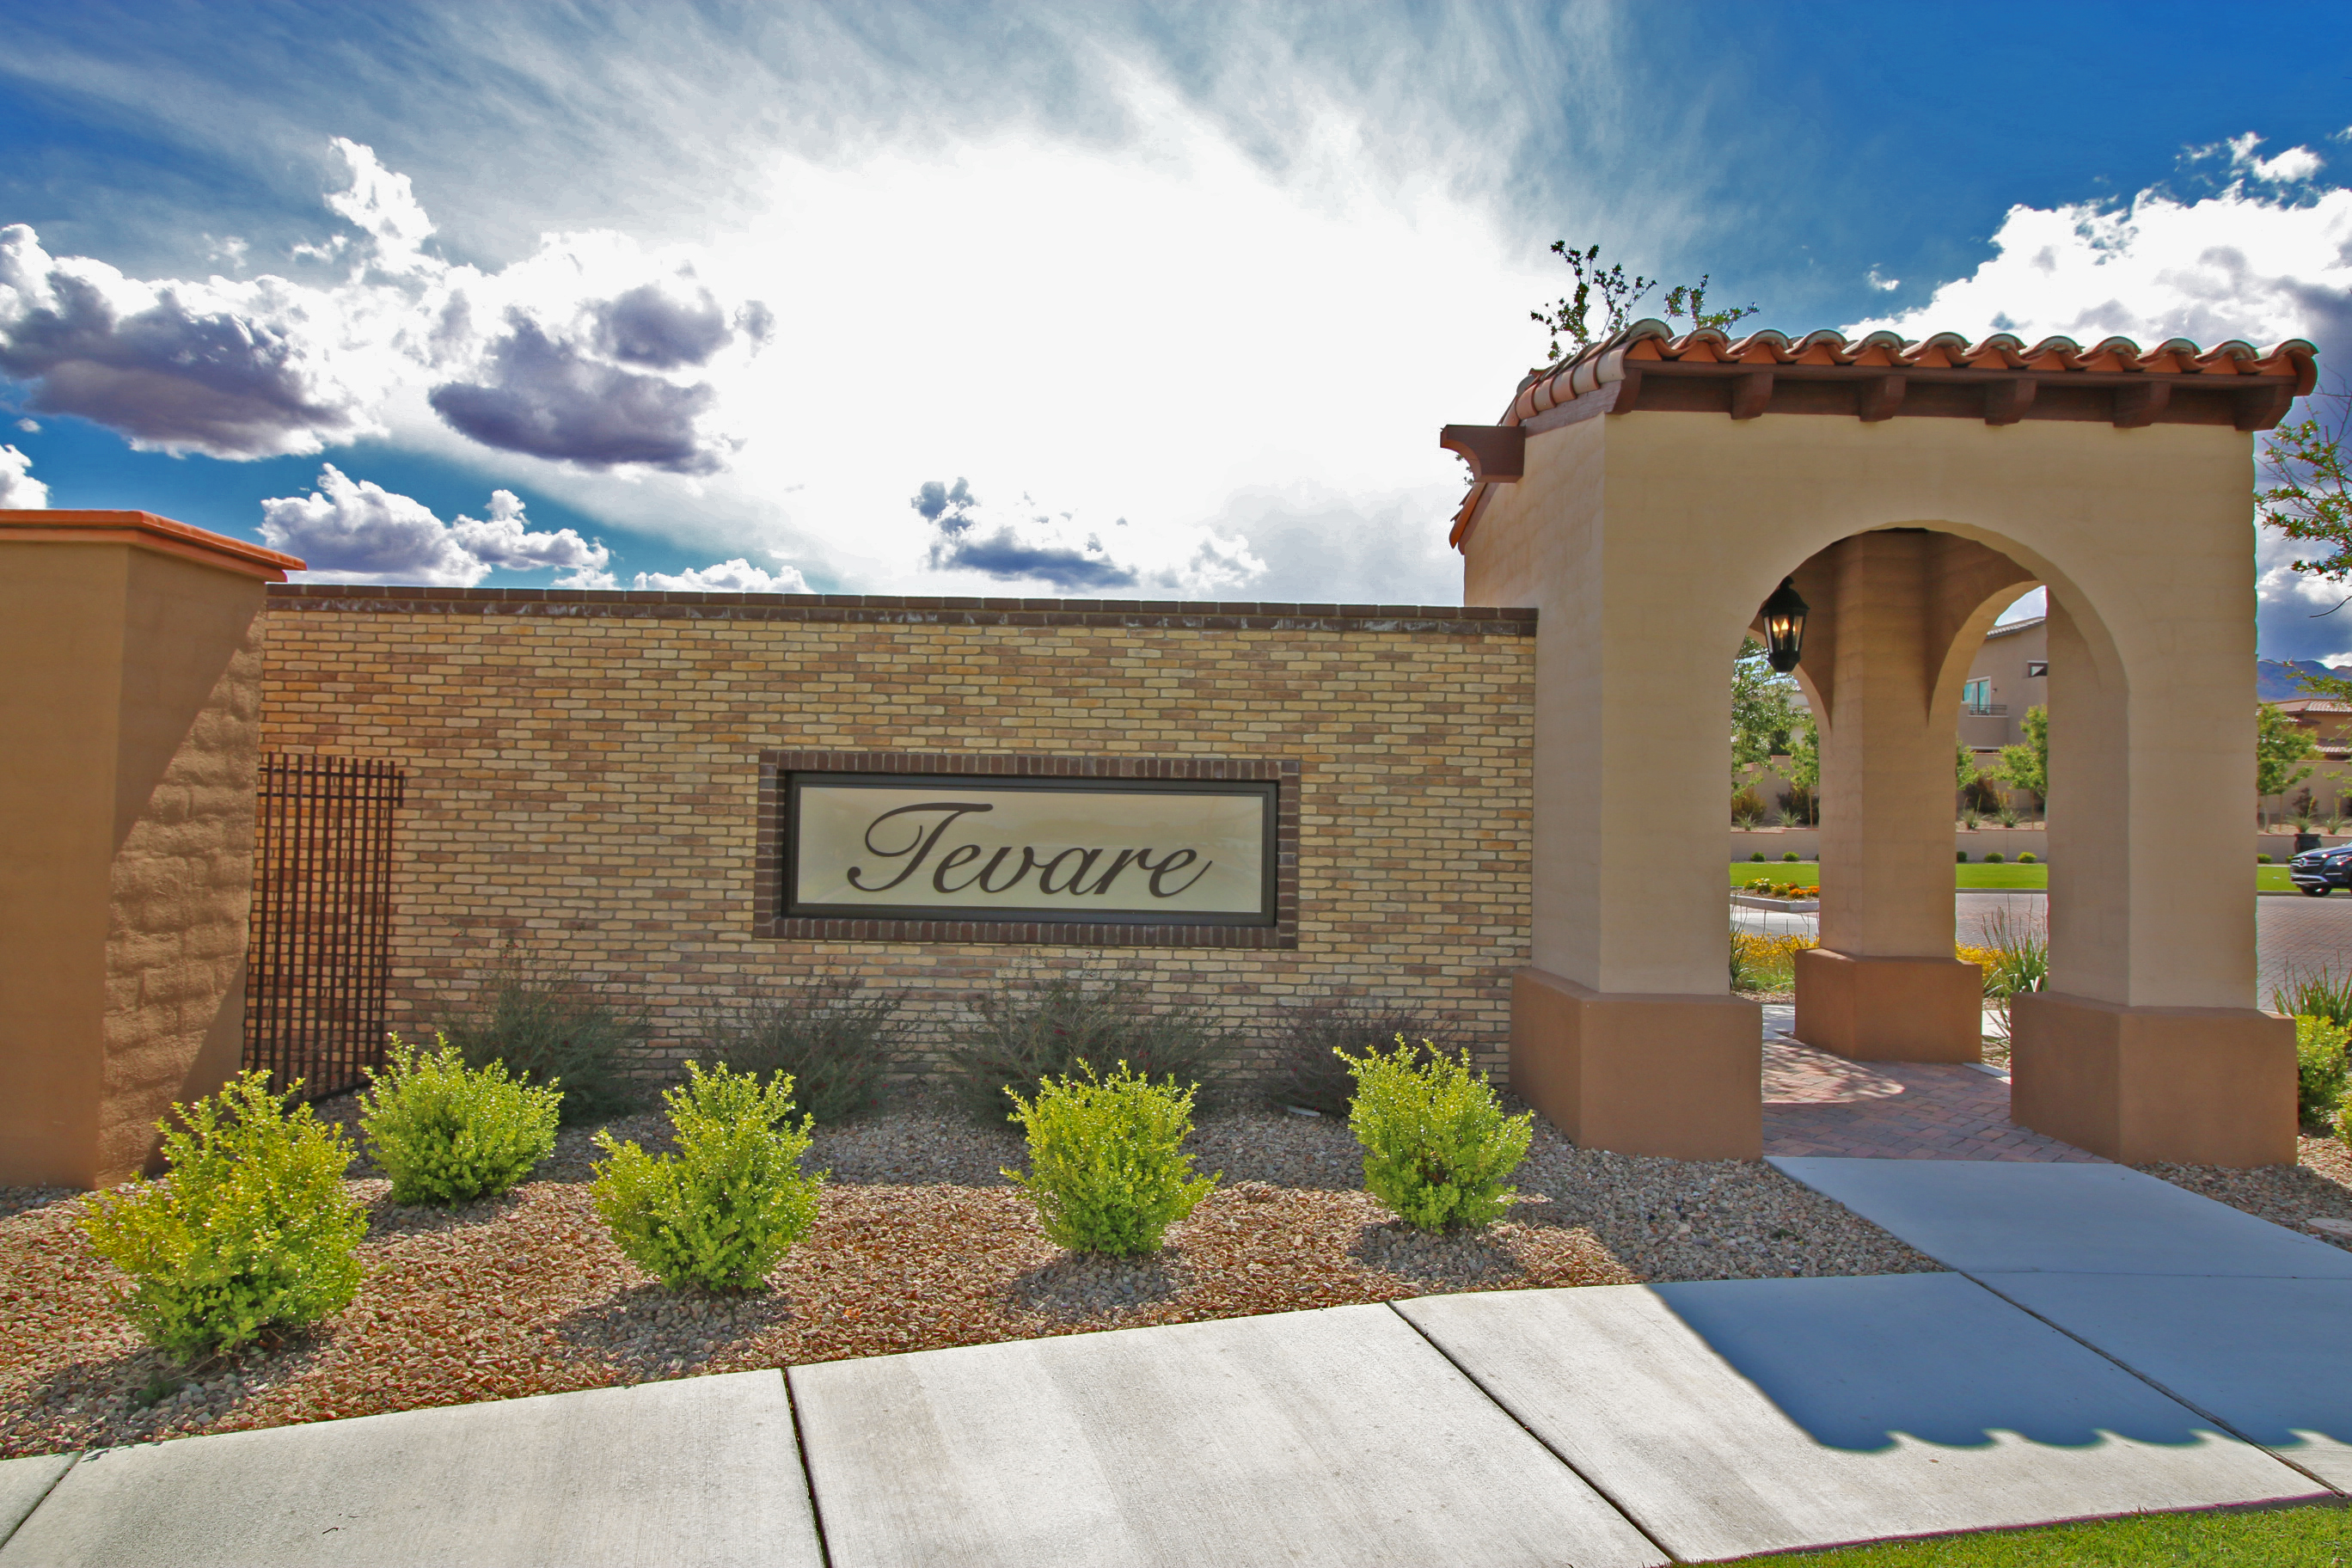 tevare homes for sale summerlin the paseos las vegas real estate